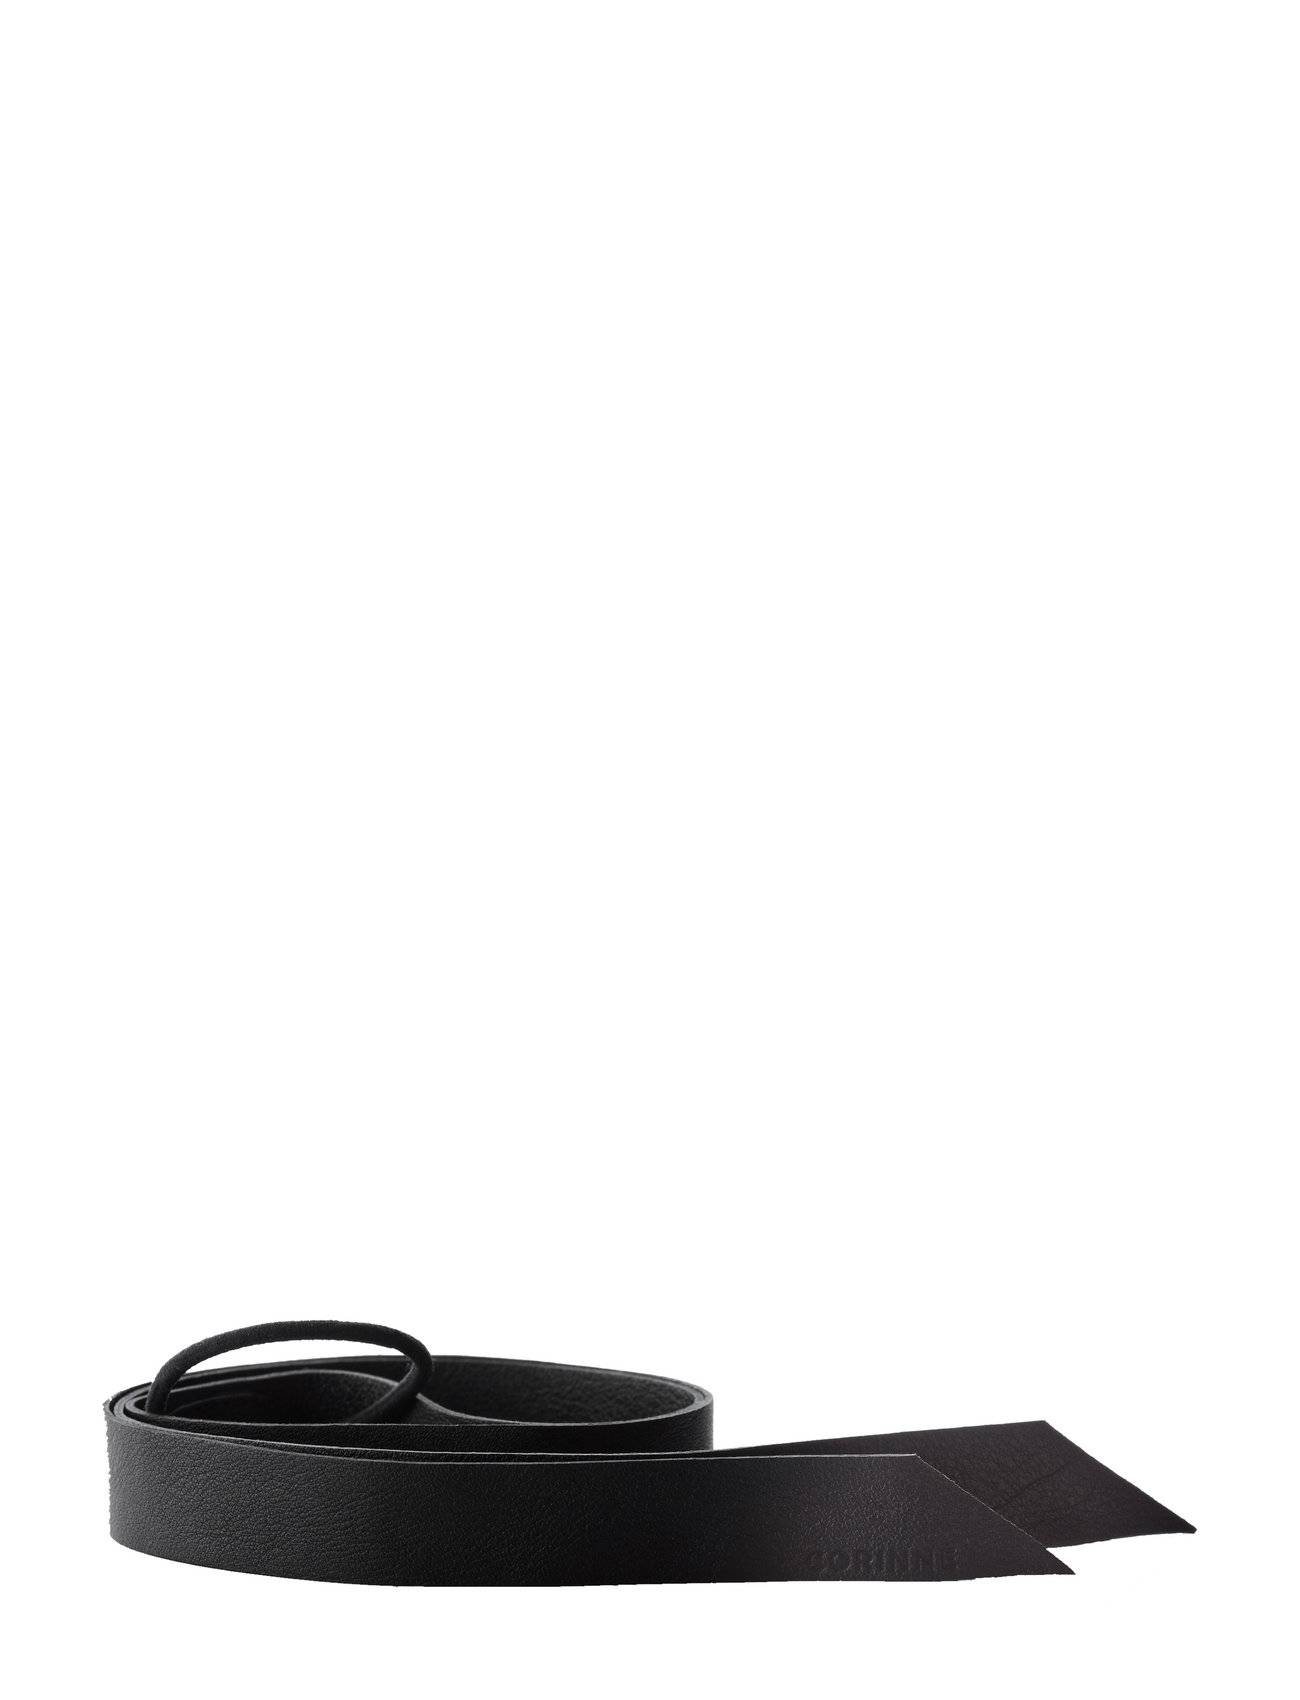 Corinne Leather Band Long